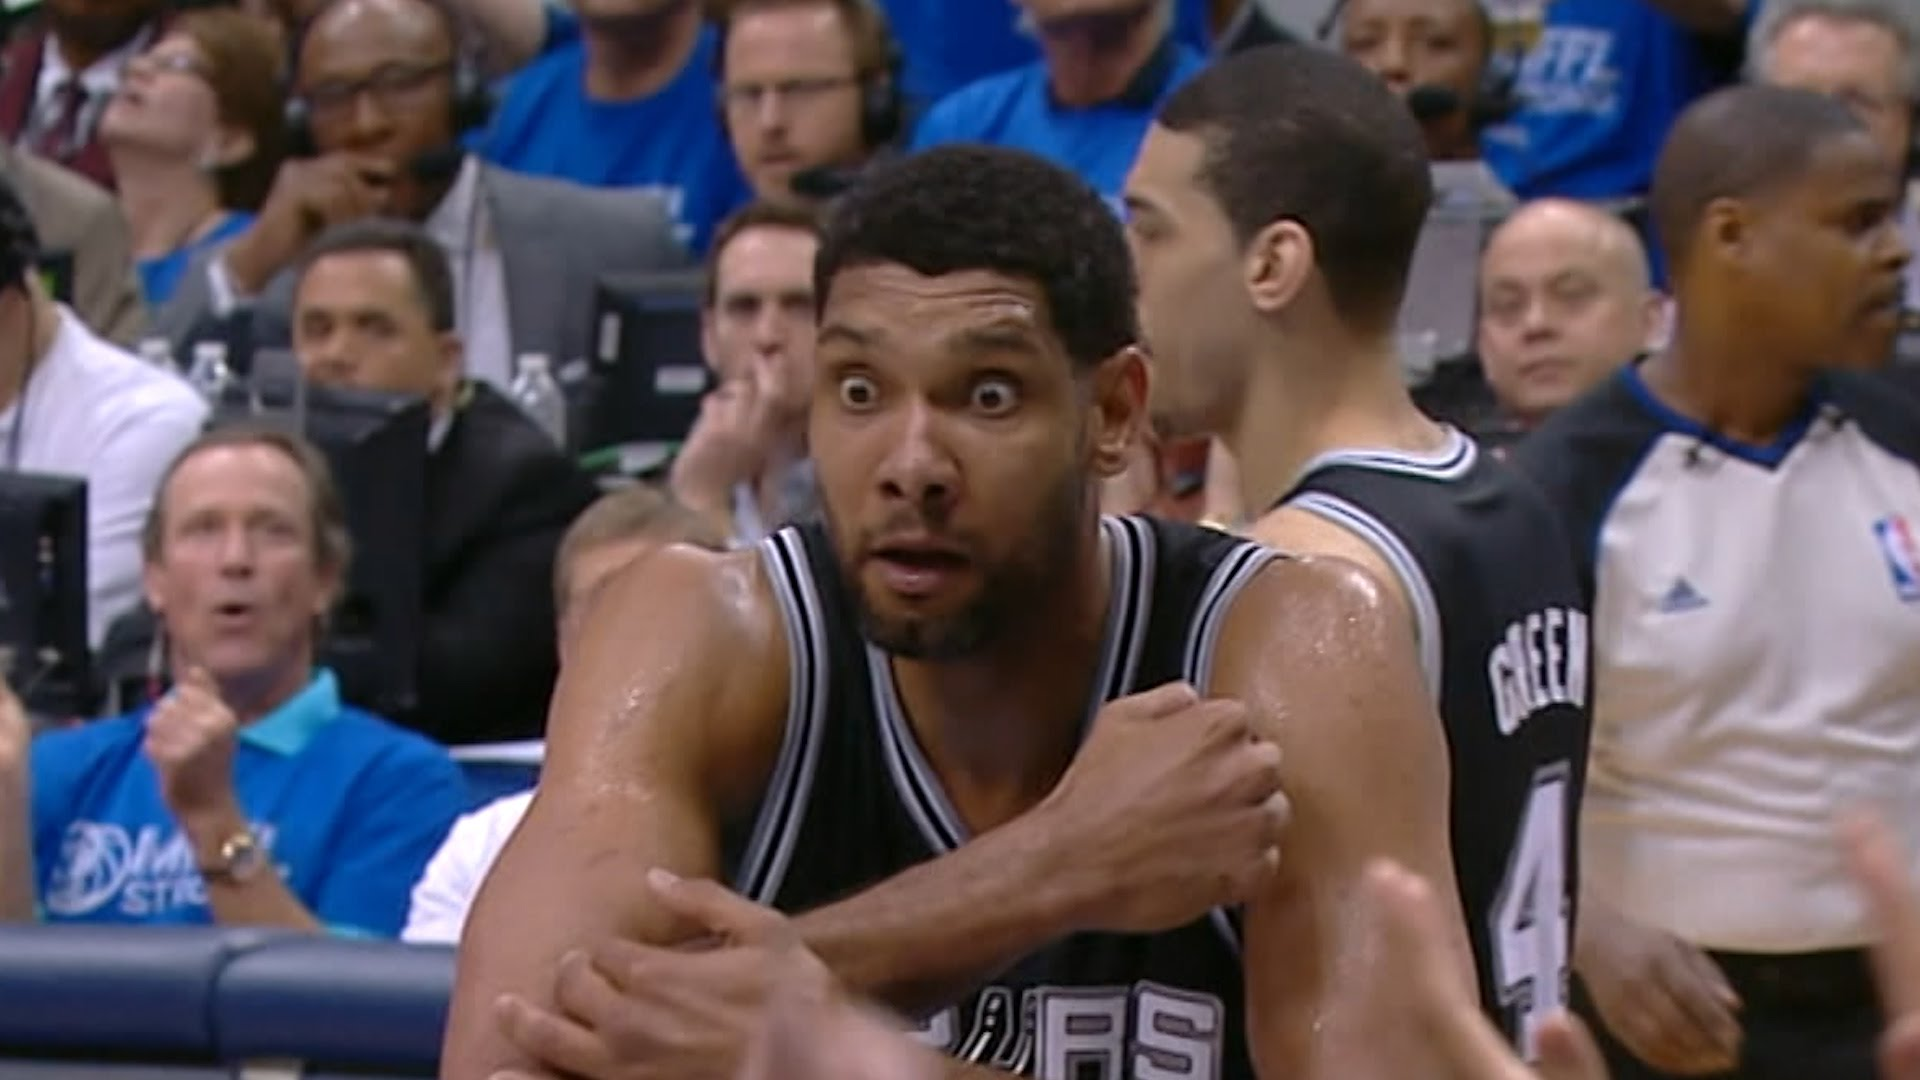 Top 5 things we'll miss about Tim Duncan